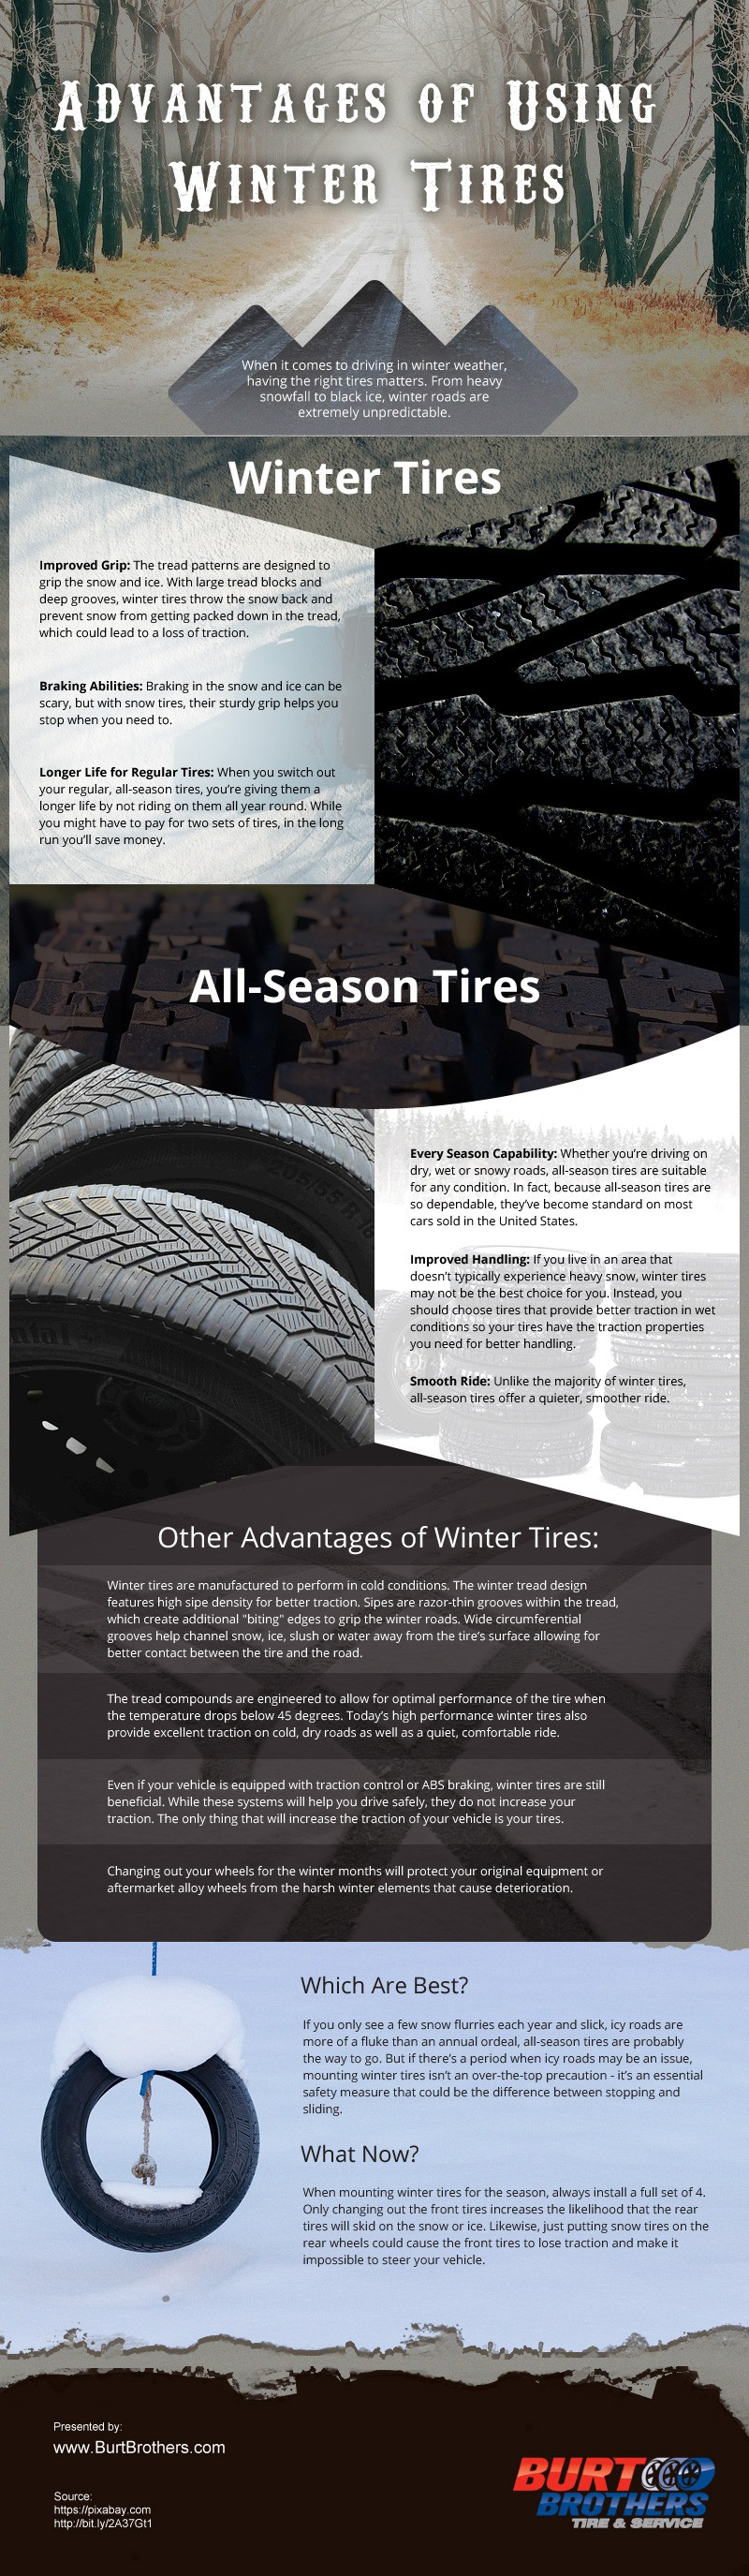 Advantages of Using Winter Tires [infographic]